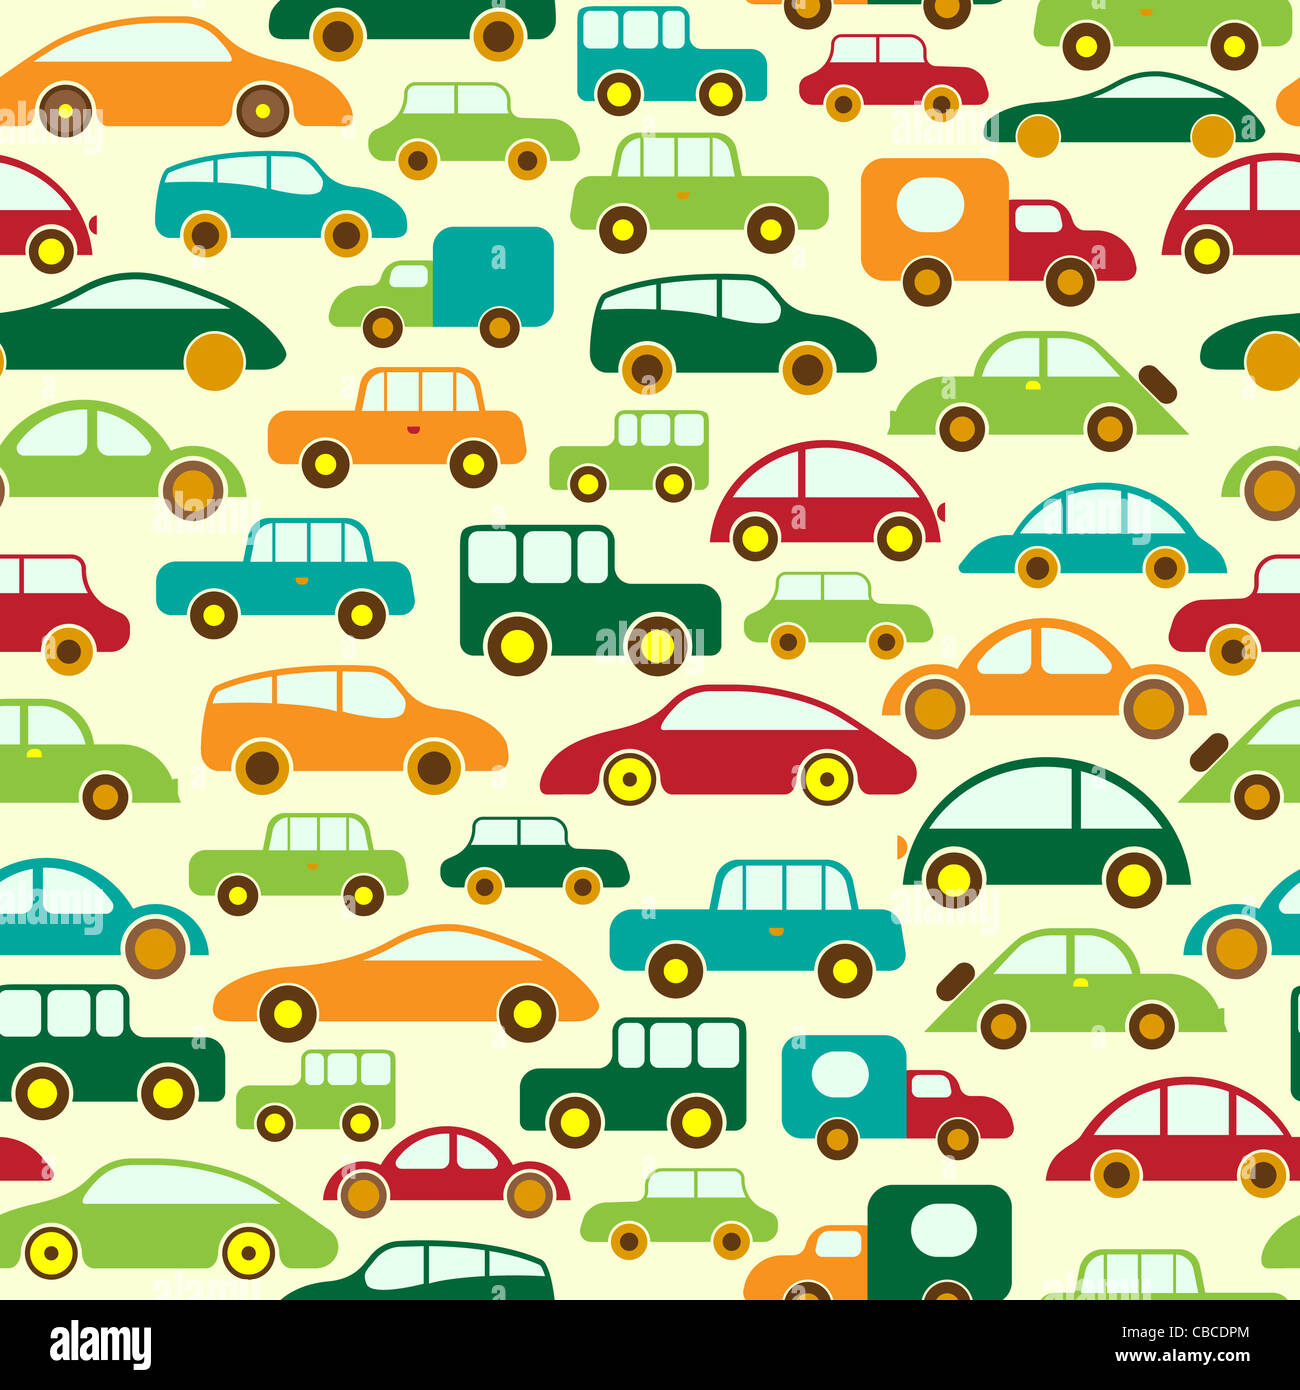 Car Seamless Wallpaper or Background Stock Photo